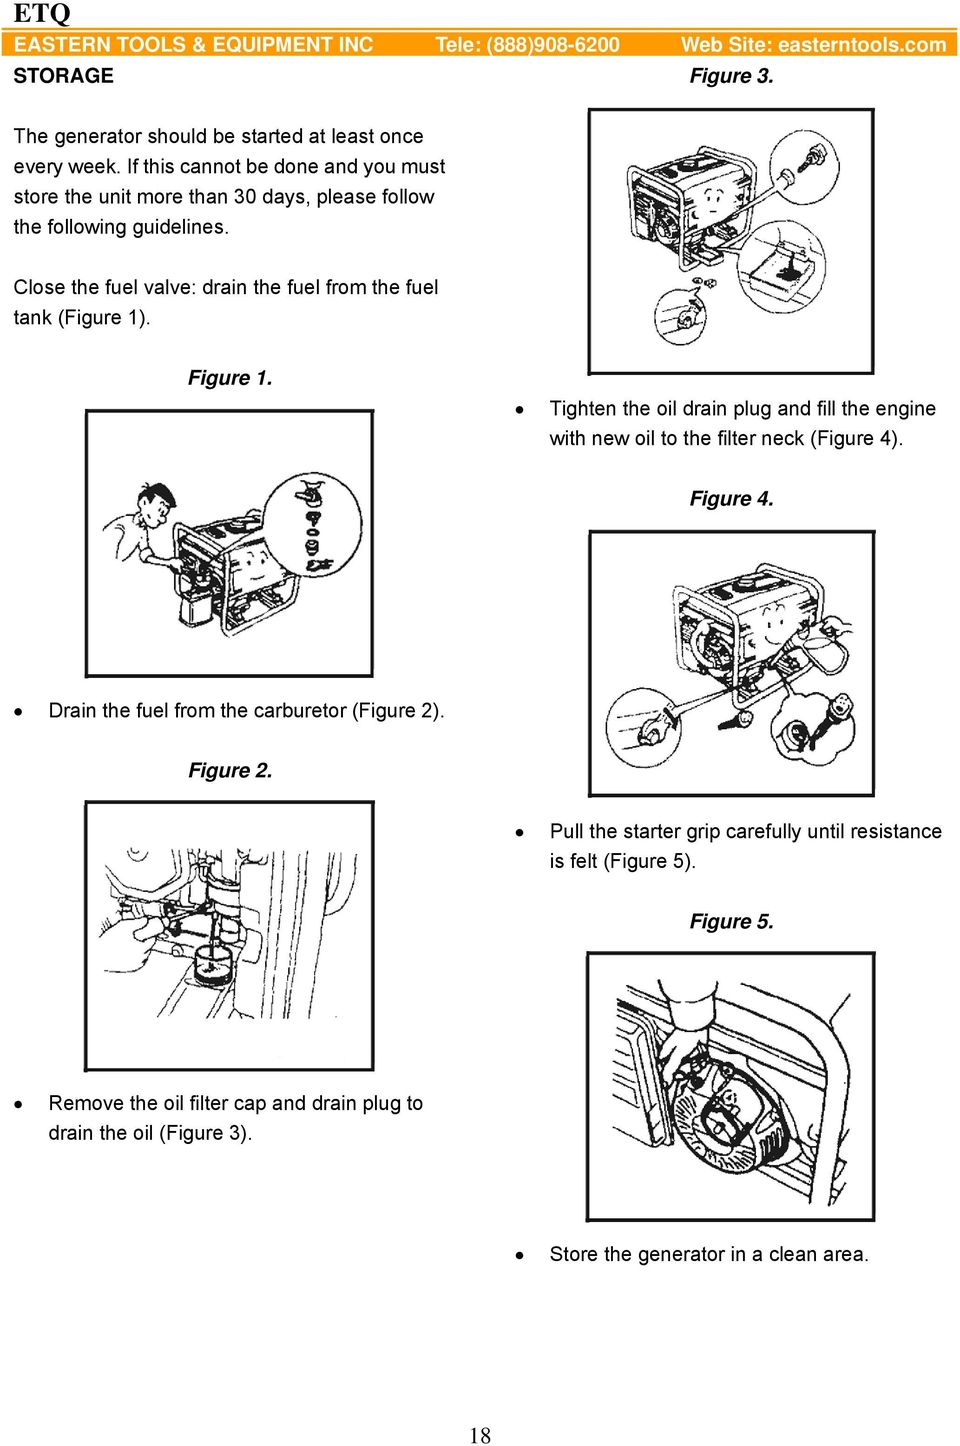 Close the fuel valve: drain the fuel from the fuel tank (Figure 1). Figure 1. Tighten the oil drain plug and fill the engine with new oil to the filter neck (Figure 4).